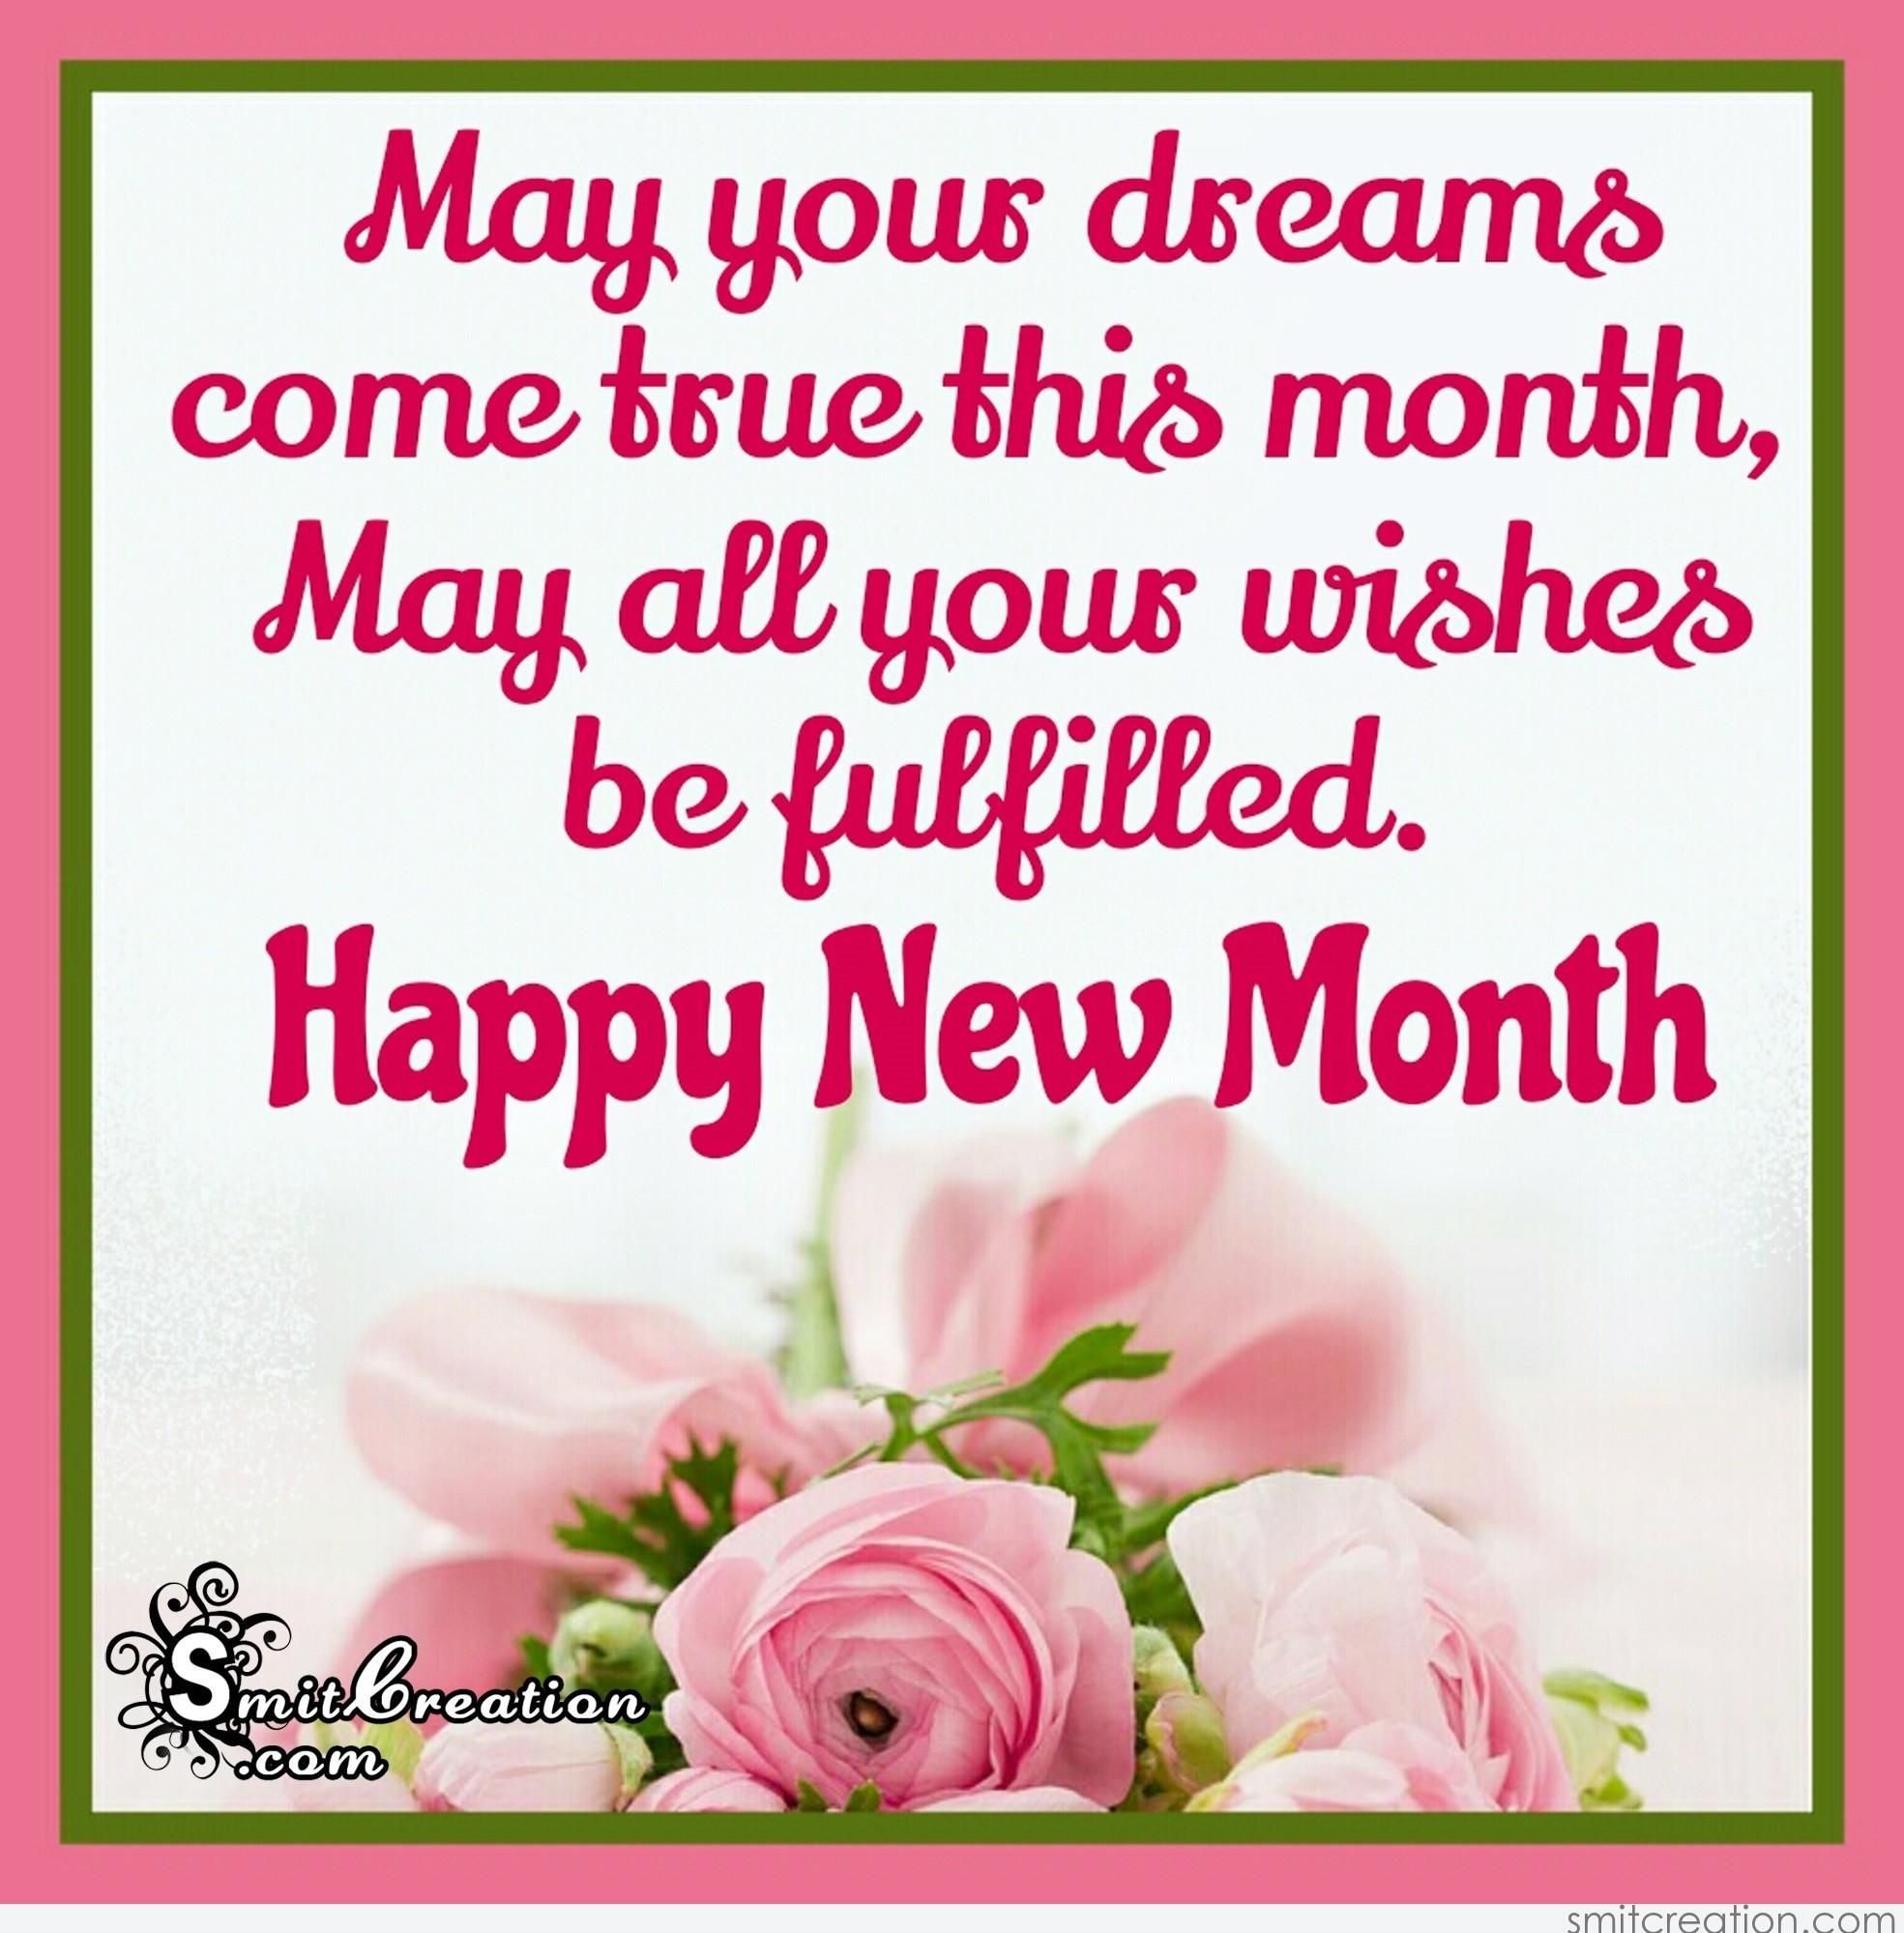 New month pictures and graphics smitcreation page 2 may your dreams come true this month may all your wishes be fulfilled happy new month m4hsunfo